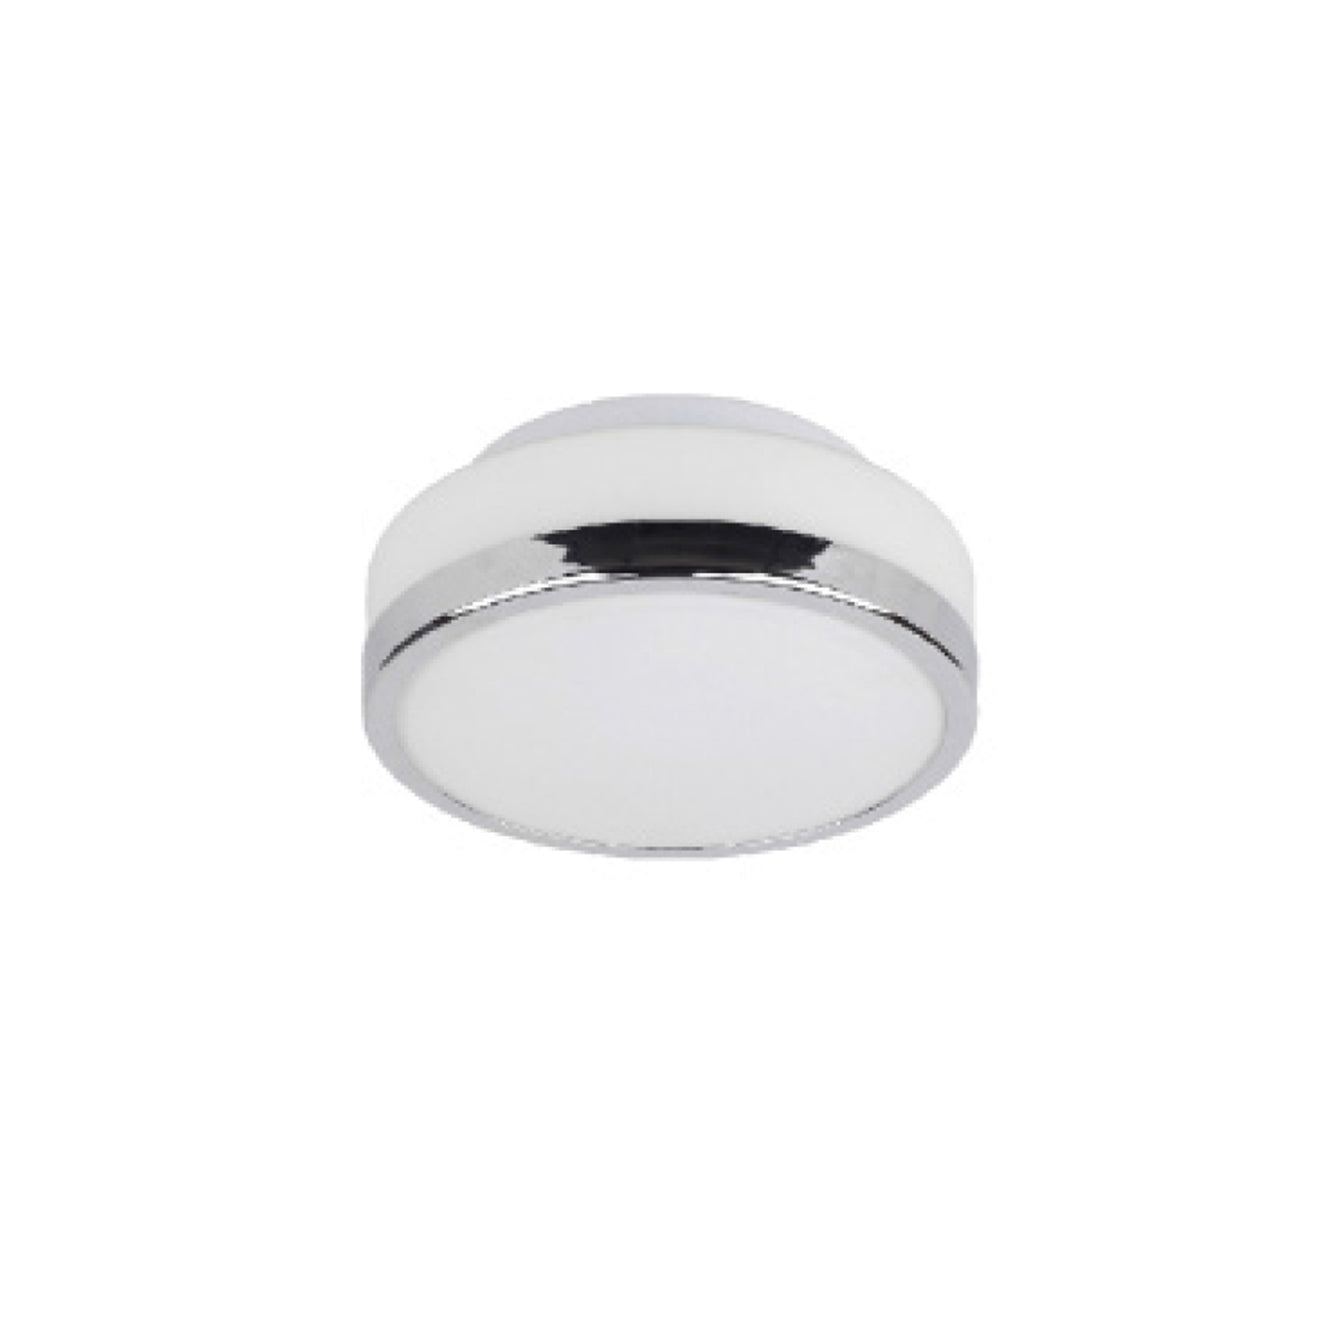 Latimer Flush Fitting Small LED Light - Buy It Better Small